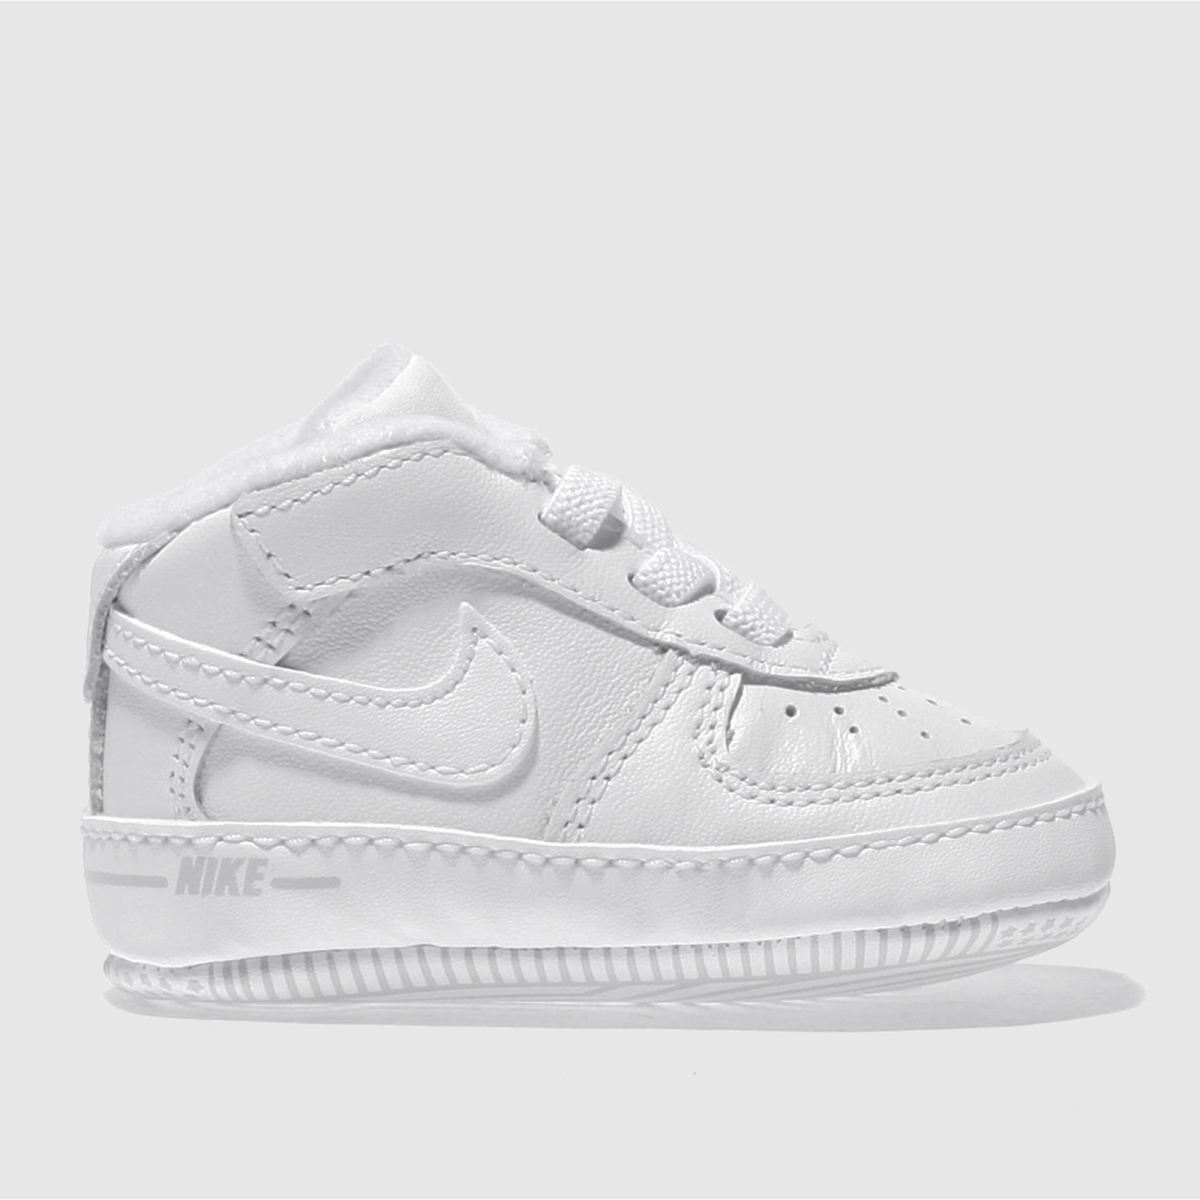 94e7f3d4c6ade Kids Unisex white nike air force 1 shoes